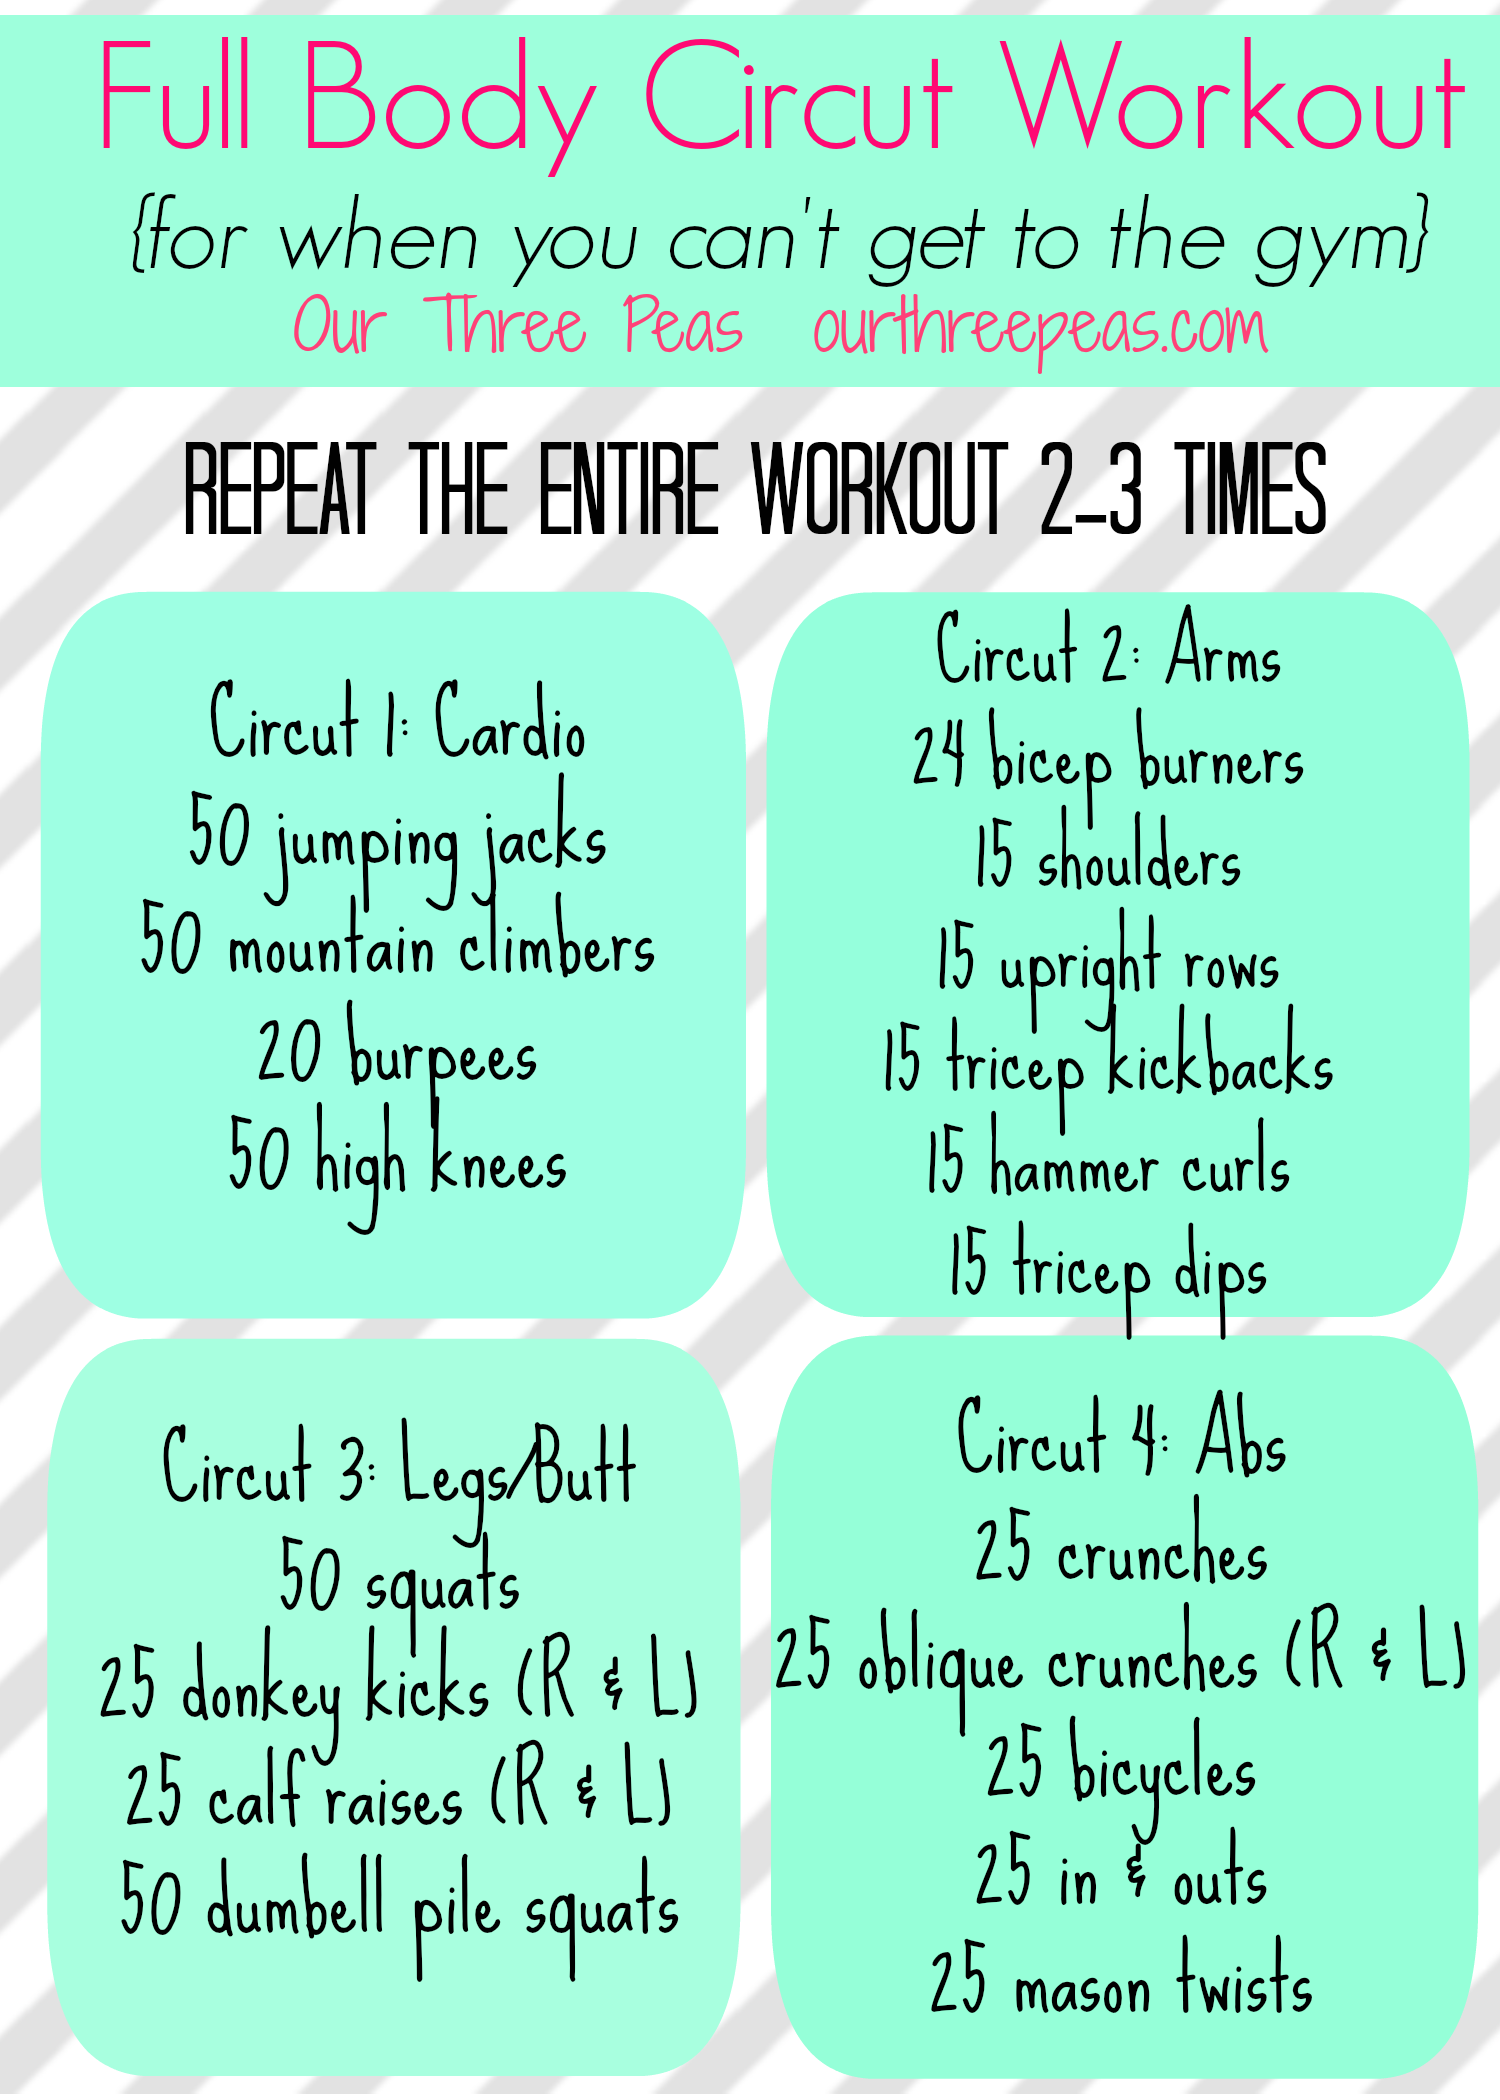 full body circuit workout work it pinterest full body circuit rh pinterest com Cardio Exercises Circuit Training Programs for Men